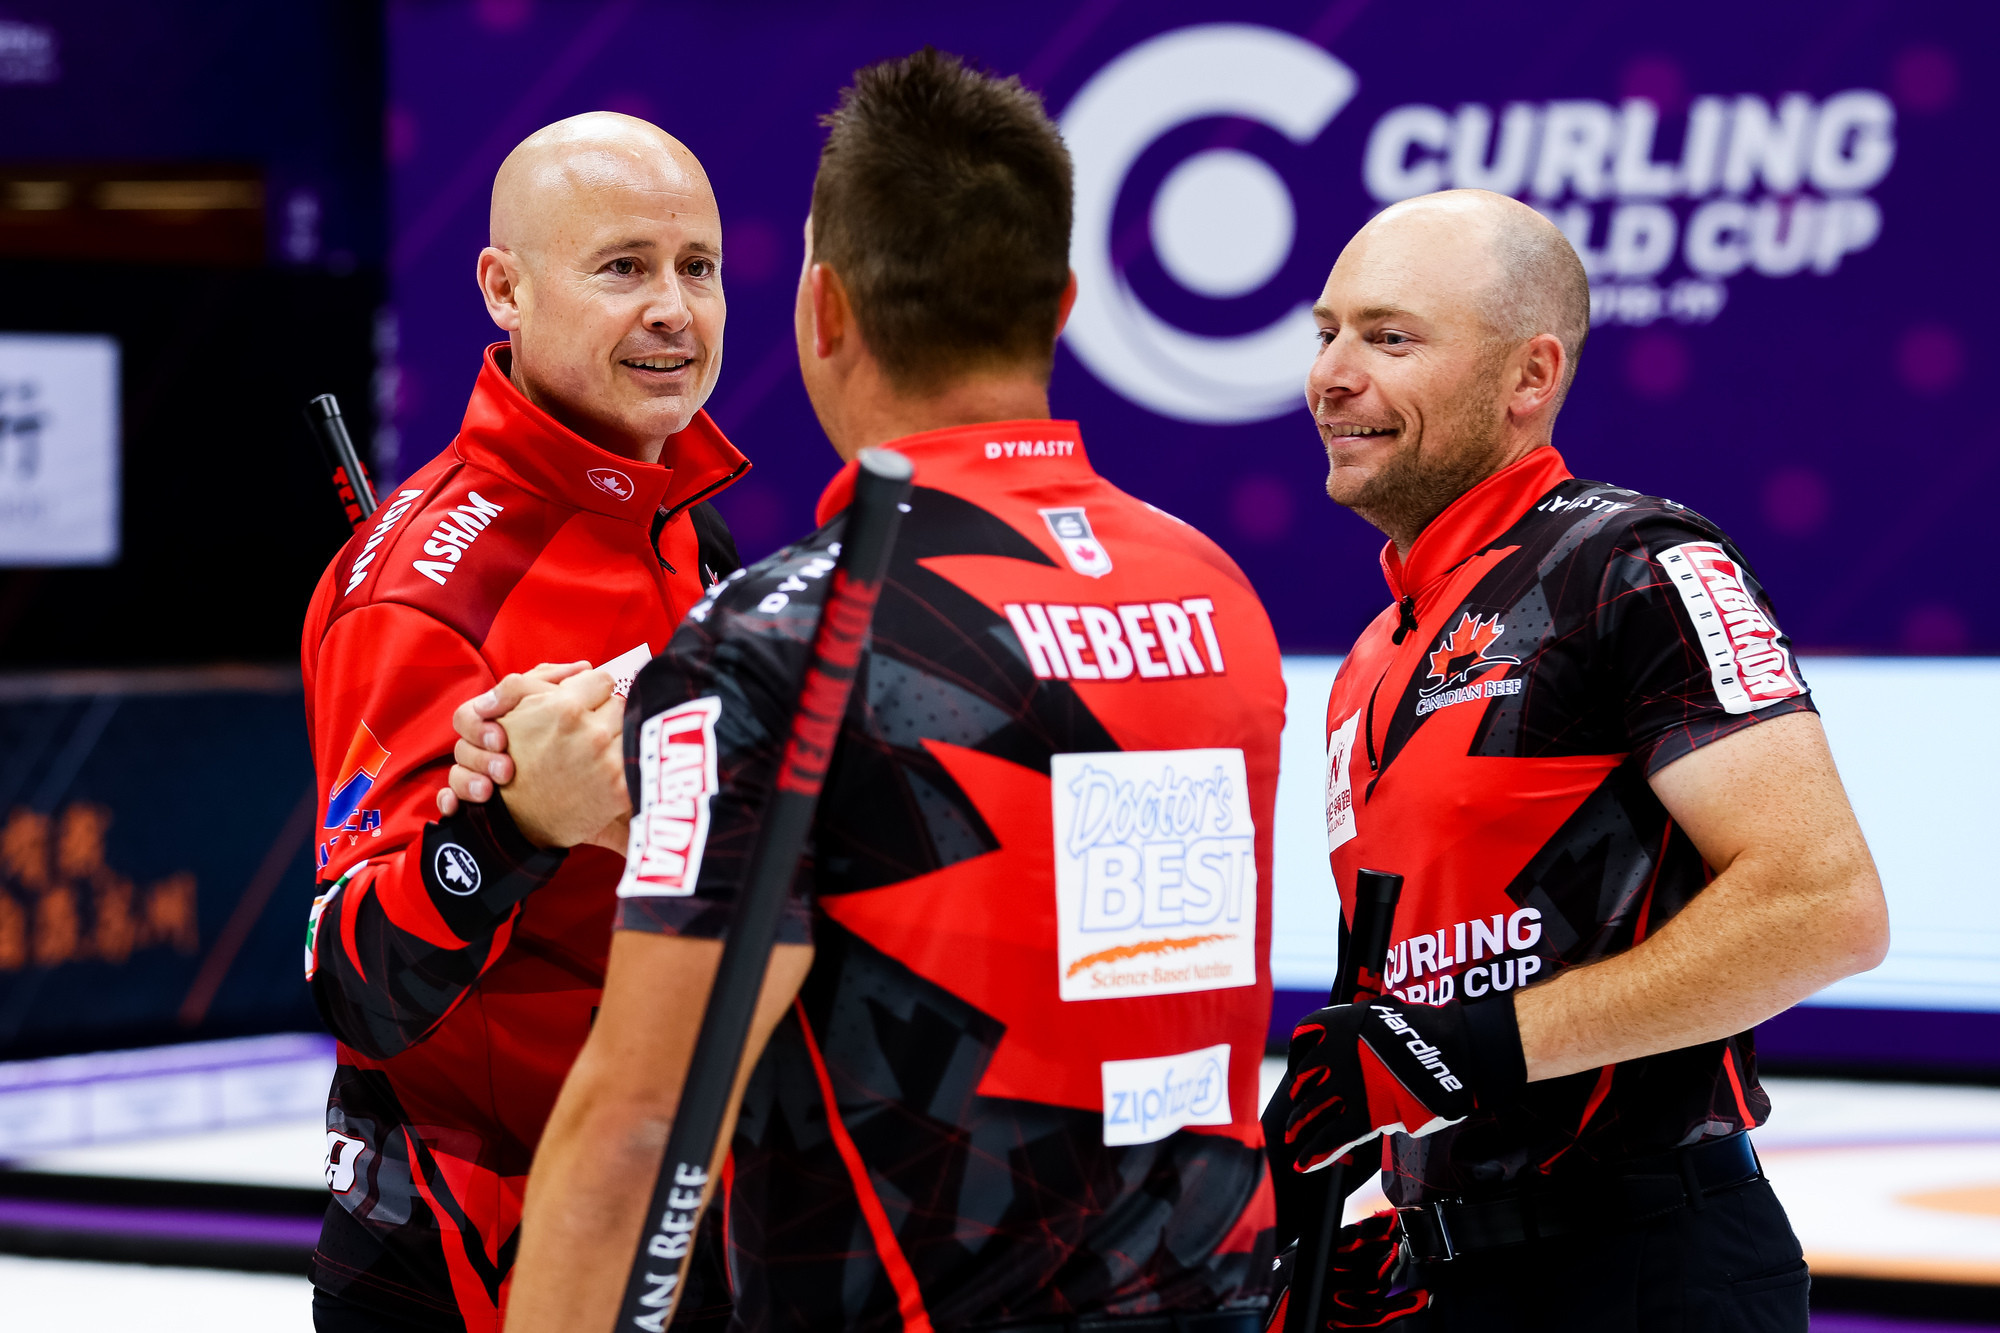 Clean sweep of golds at Curling World Cup in Suzhou earns Canada three Grand Final places